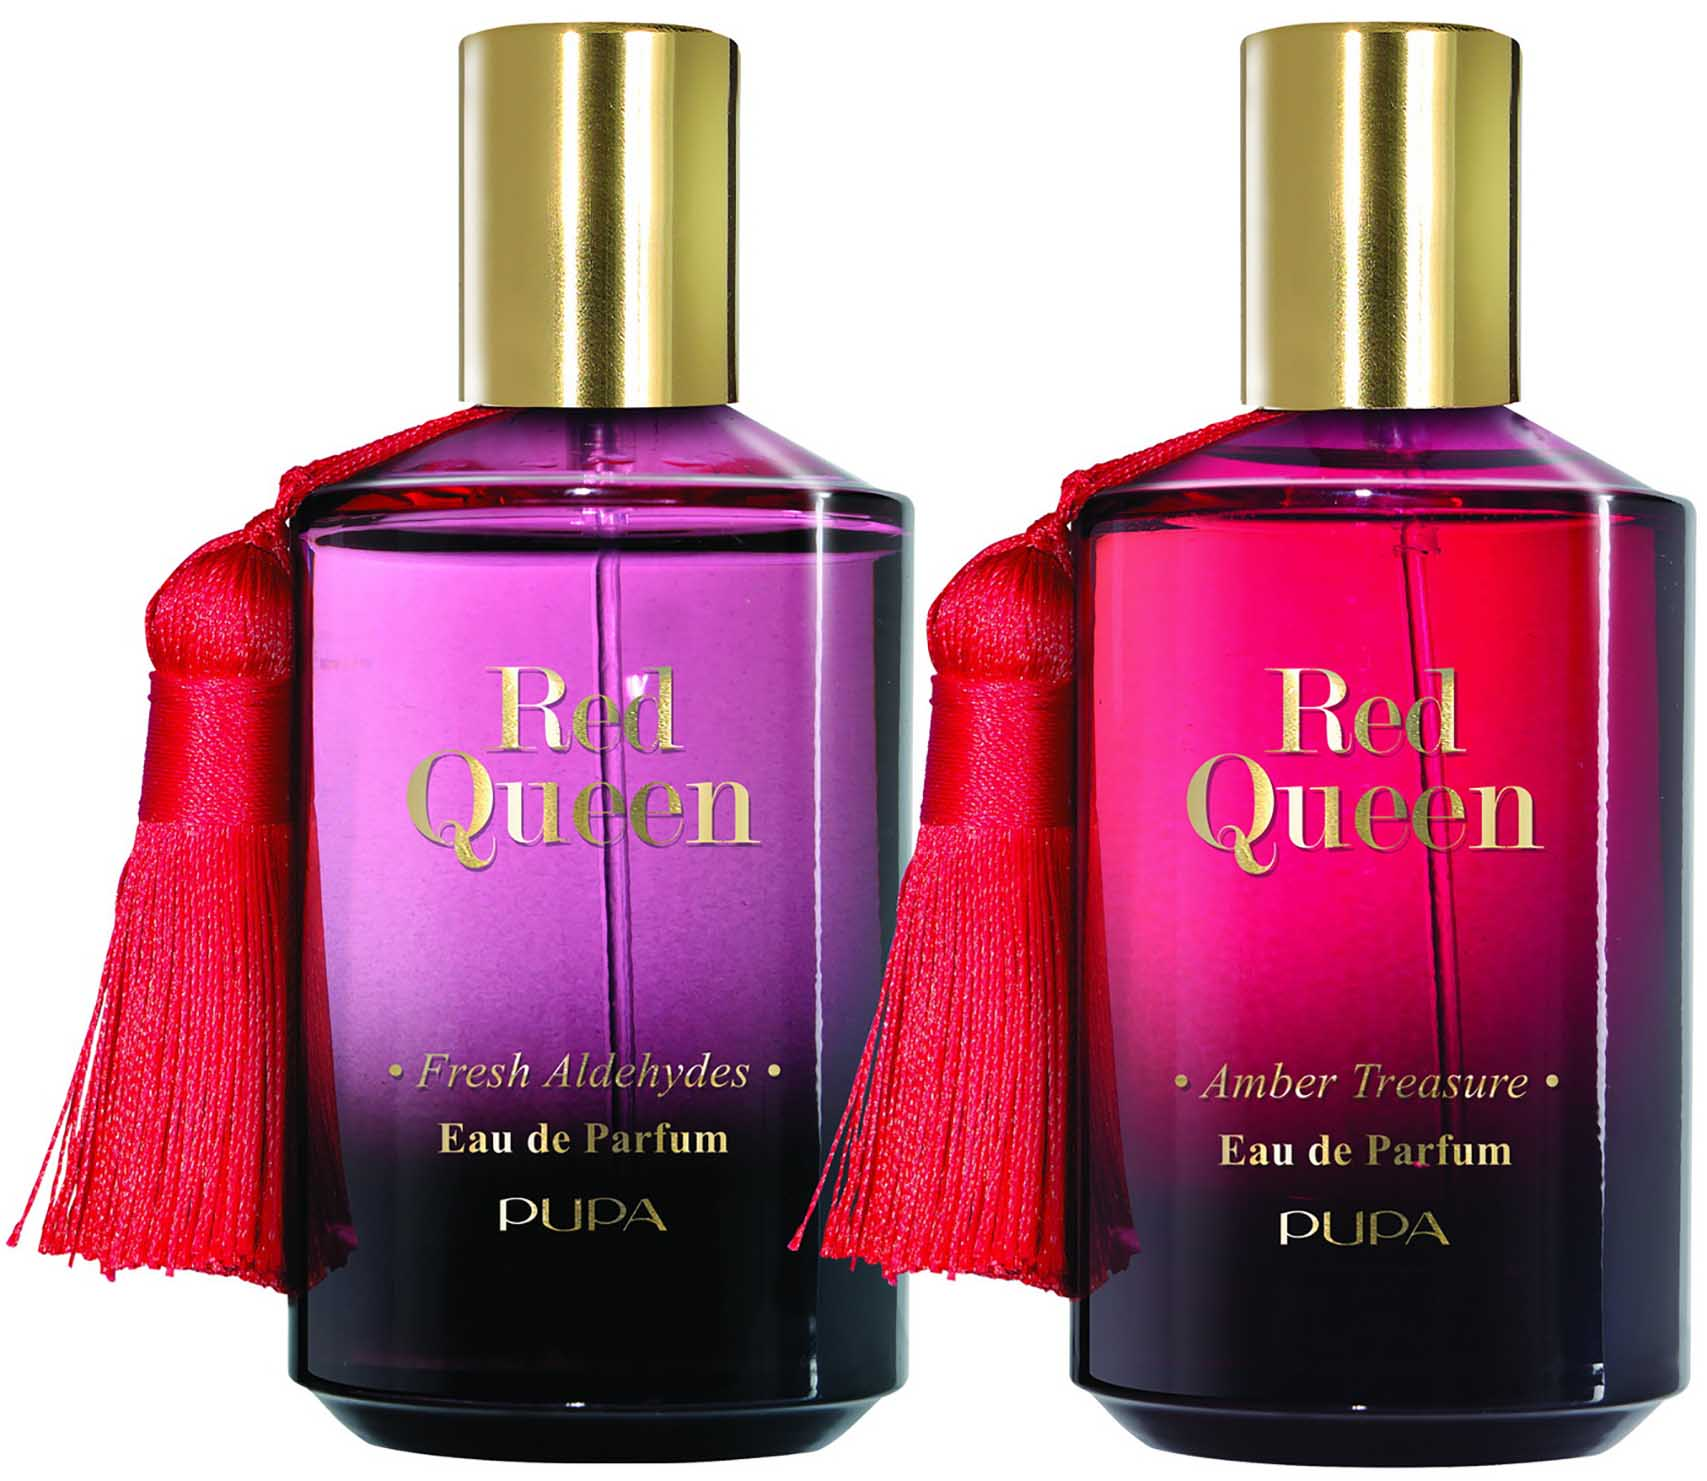 Valentine's Day 2020, pupa red queen perfume 99 שח צילום מילן קרצמן